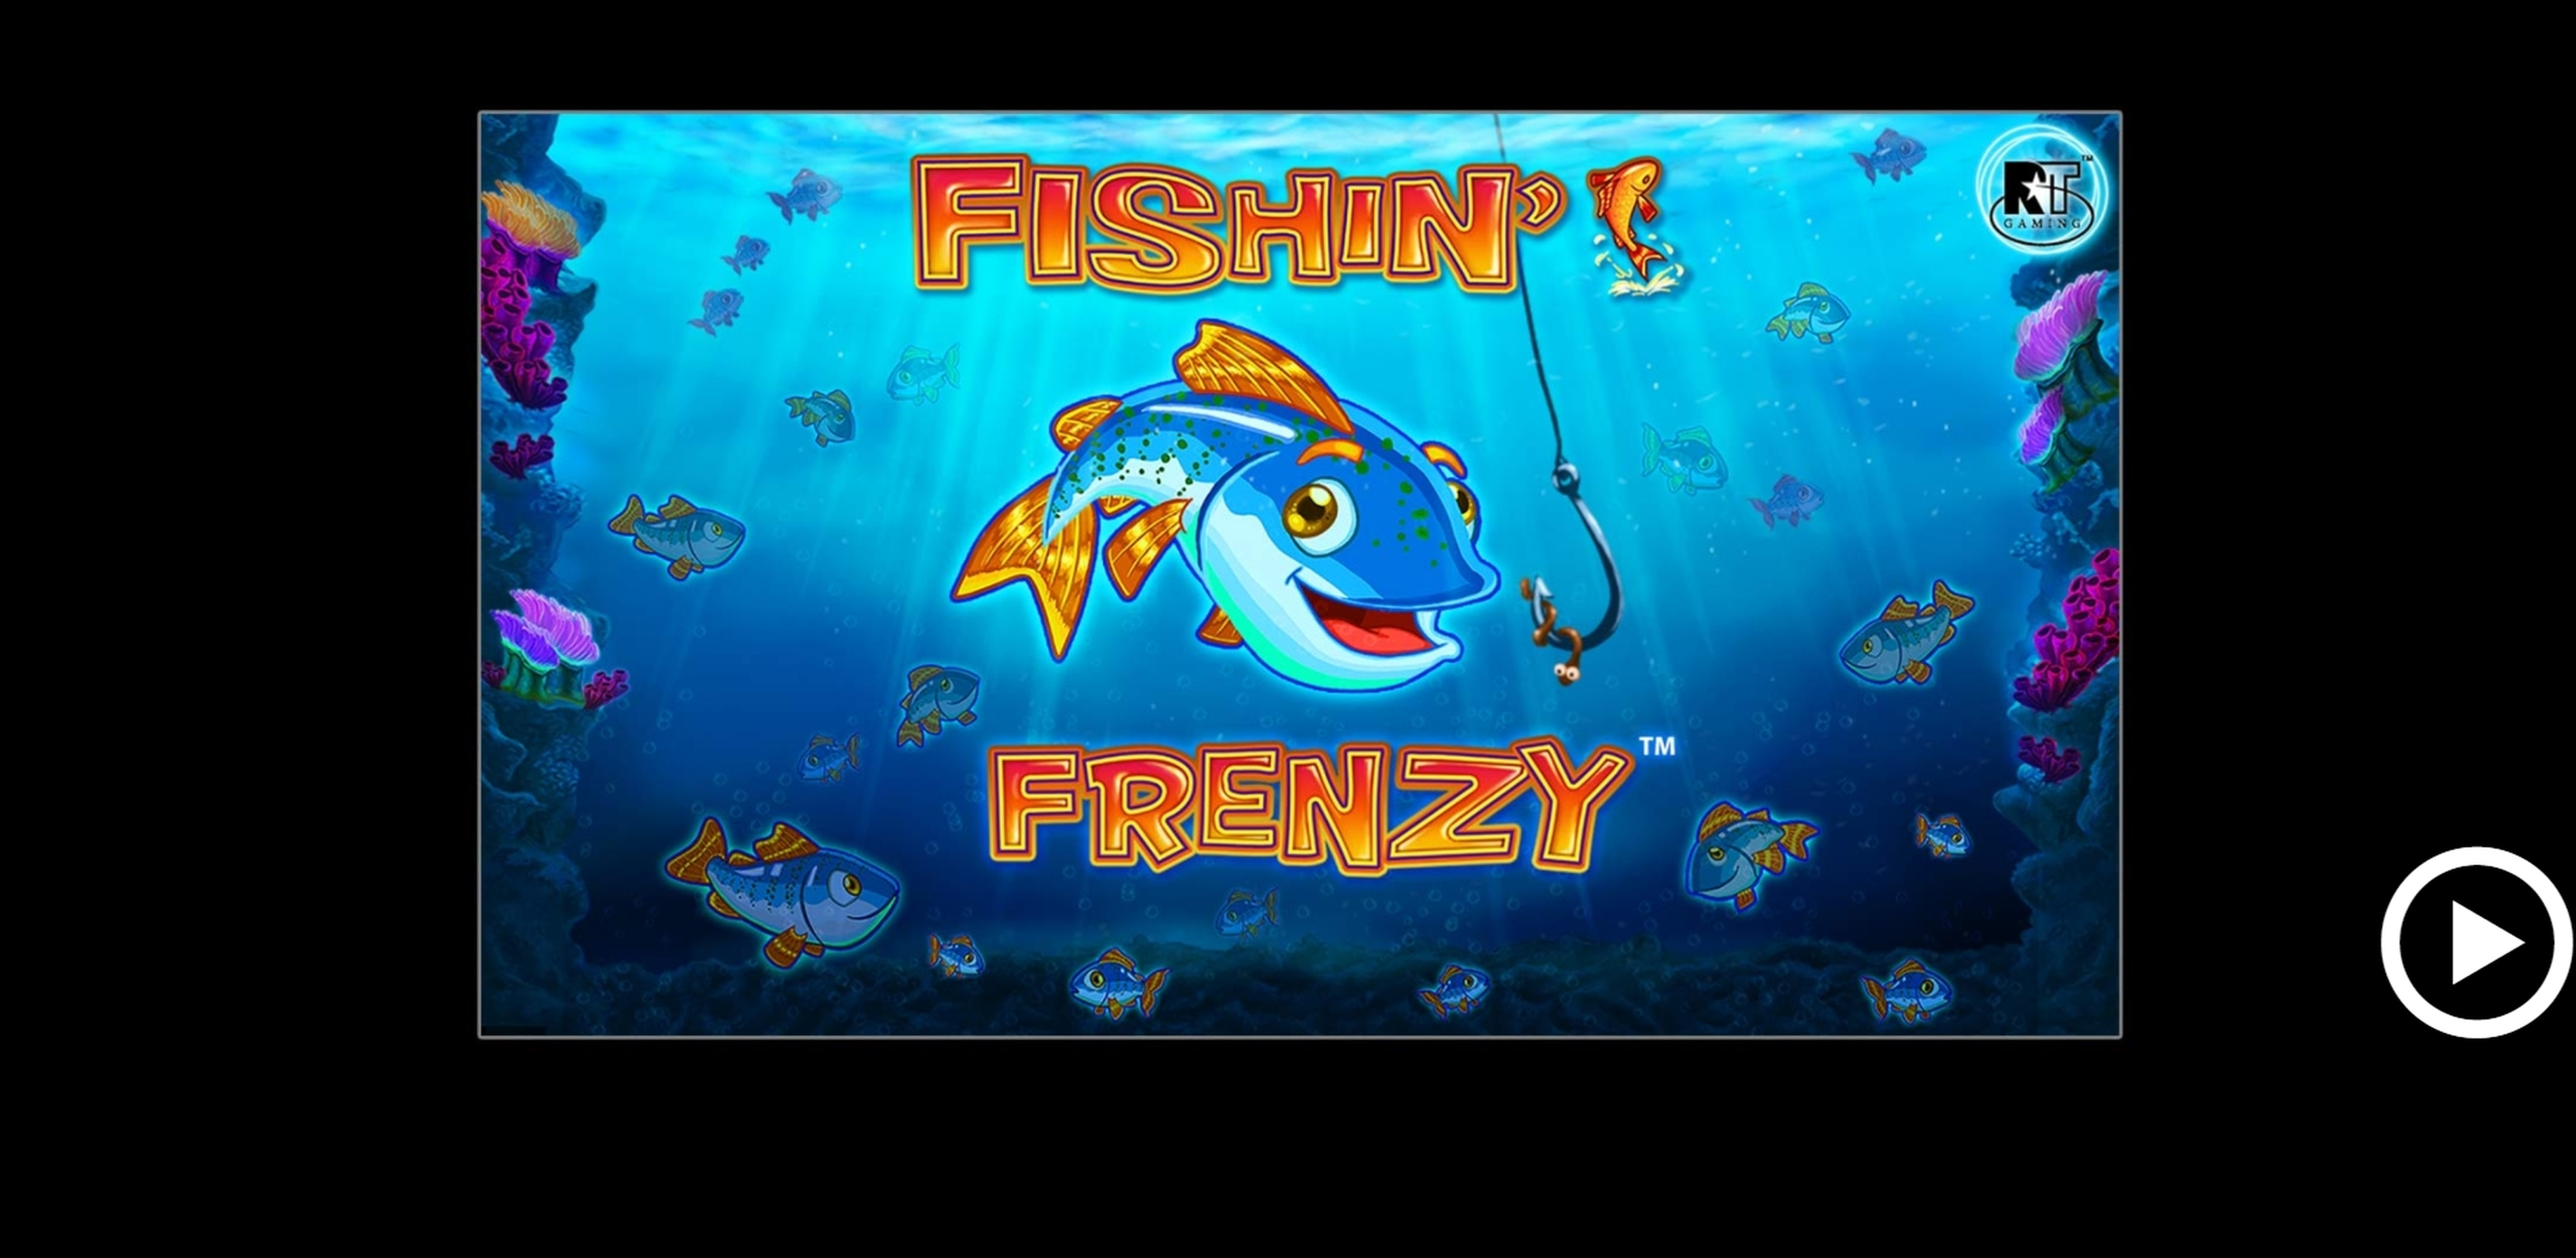 Play Fishin' Frenzy Free Casino Slot Game by Reel Time Gaming